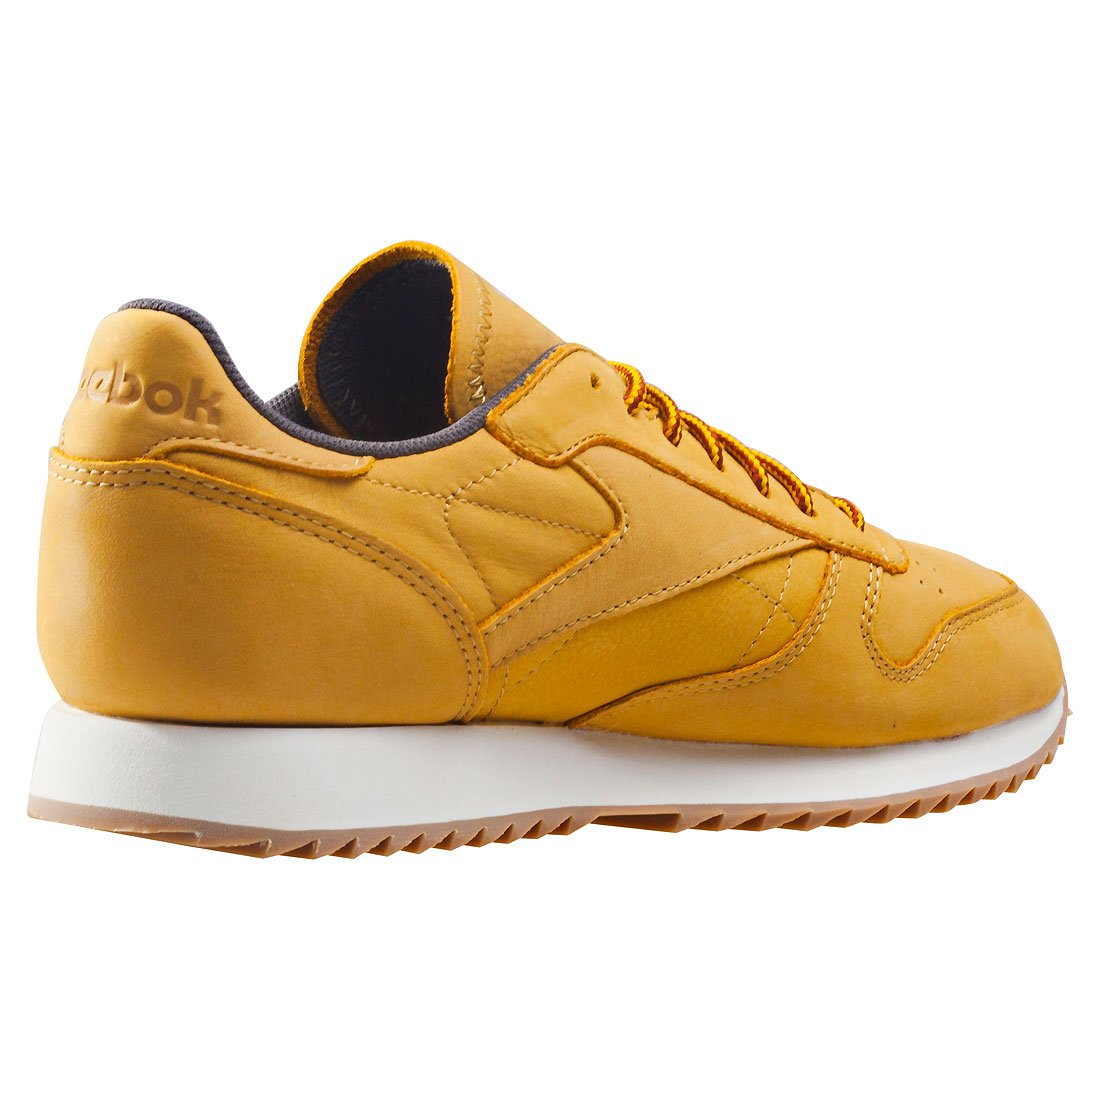 ddb9b86a791 Reebok Men s Cl Leather Ripple Wp Fitness Shoes  Amazon.co.uk  Shoes   Bags